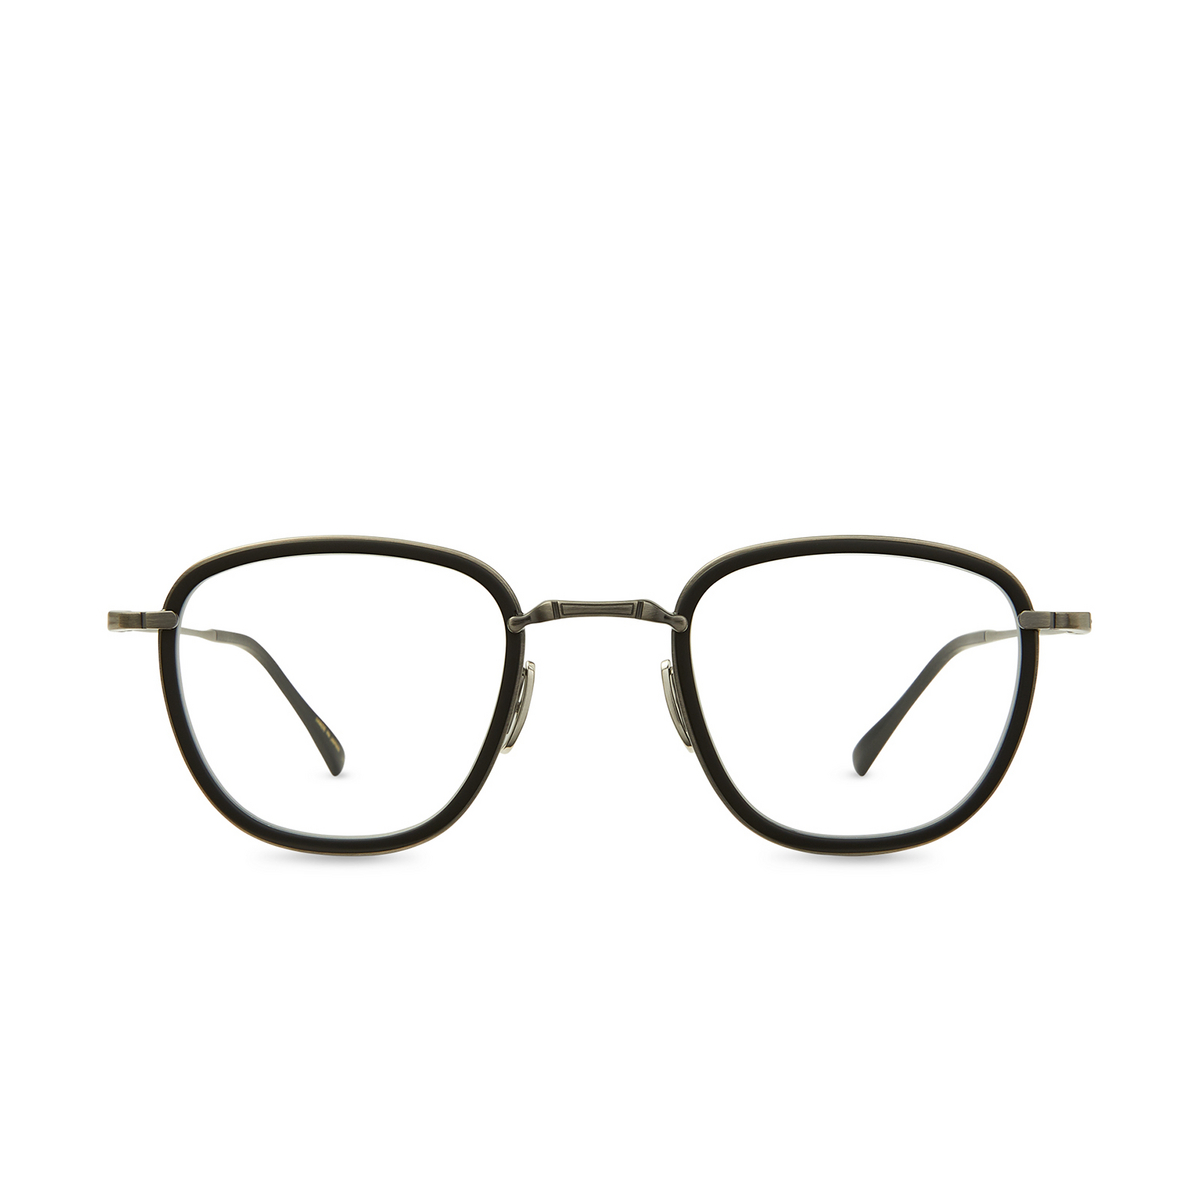 Mr. Leight® Square Eyeglasses: Griffith C color Mbk-pw-mbk - front view.